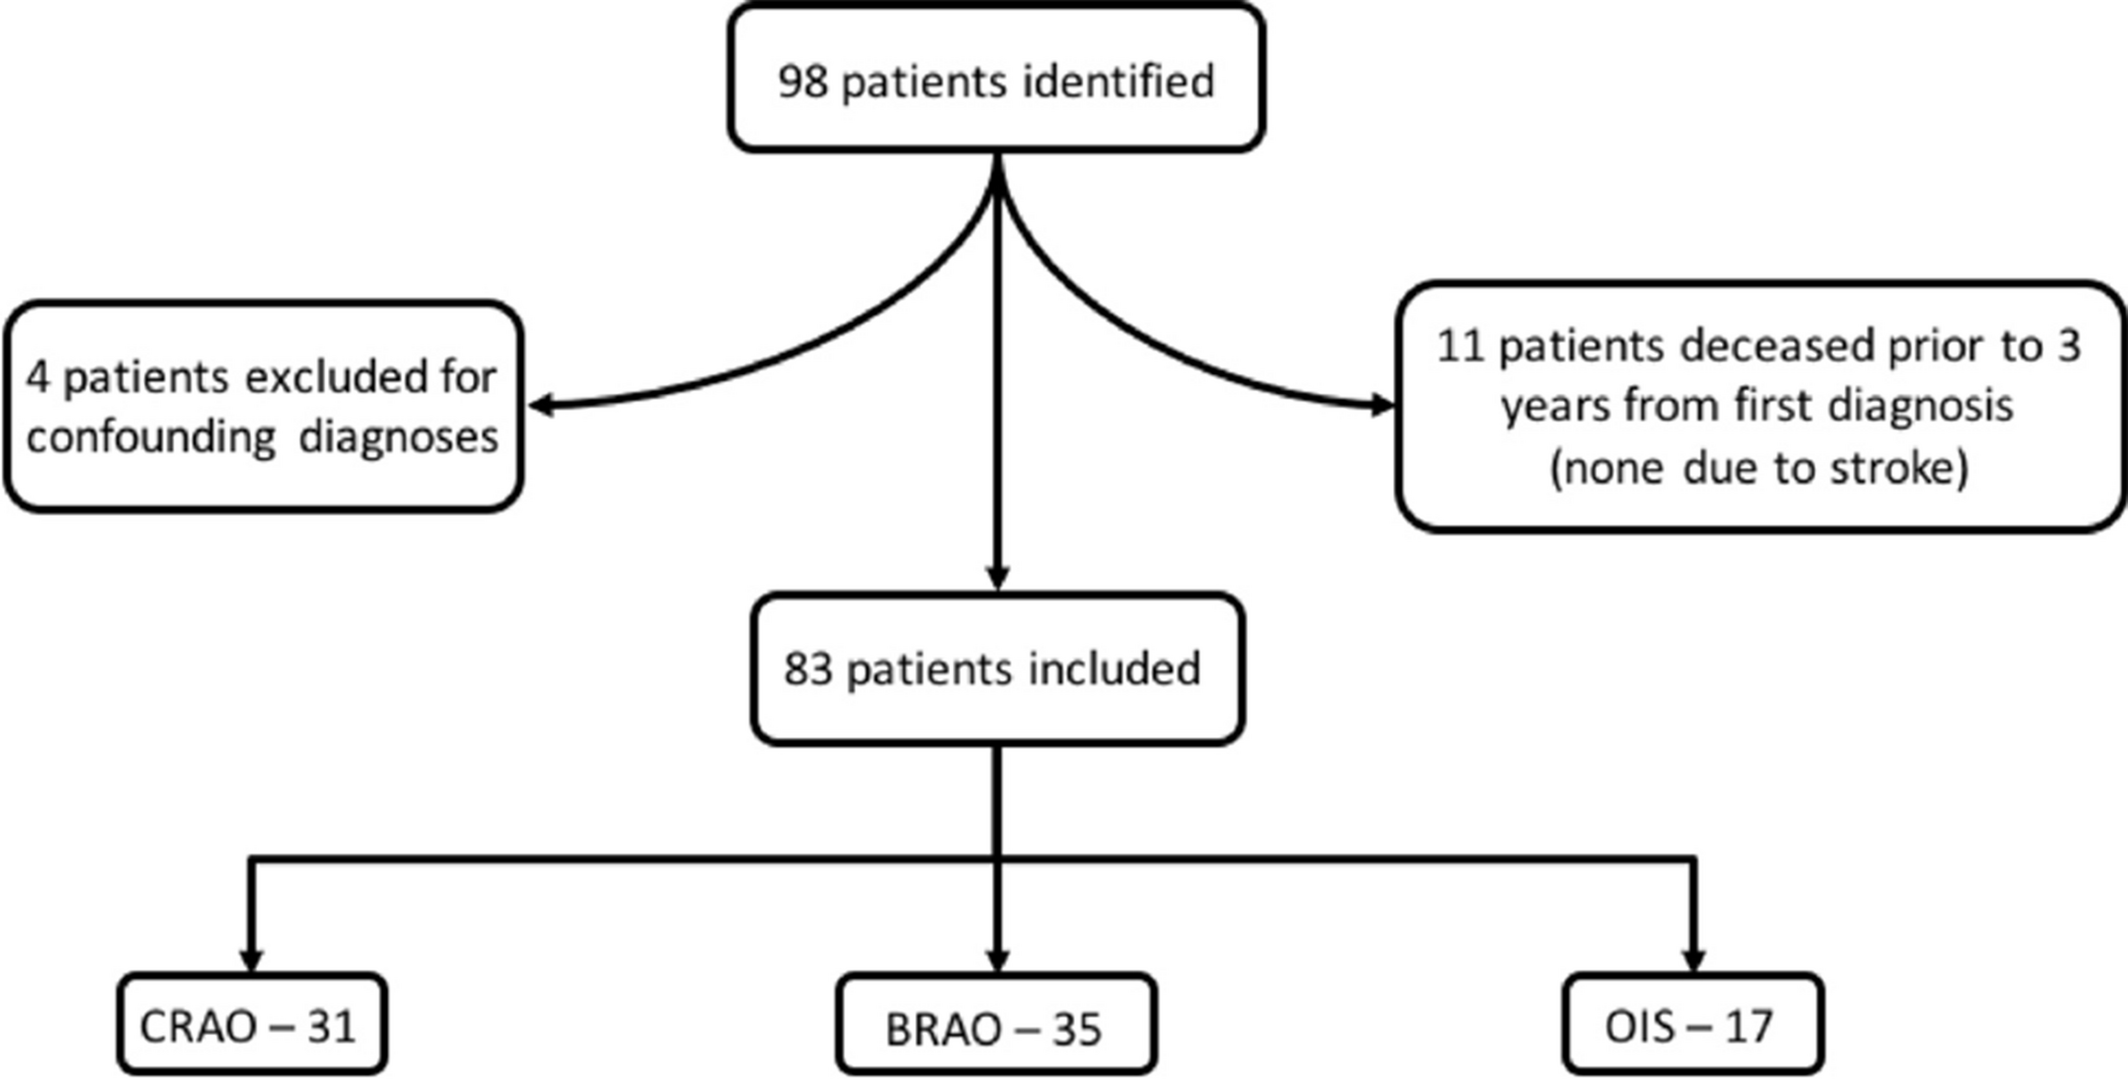 Risk of Stroke in Patients With Ocular Arterial Occlusive Disorders